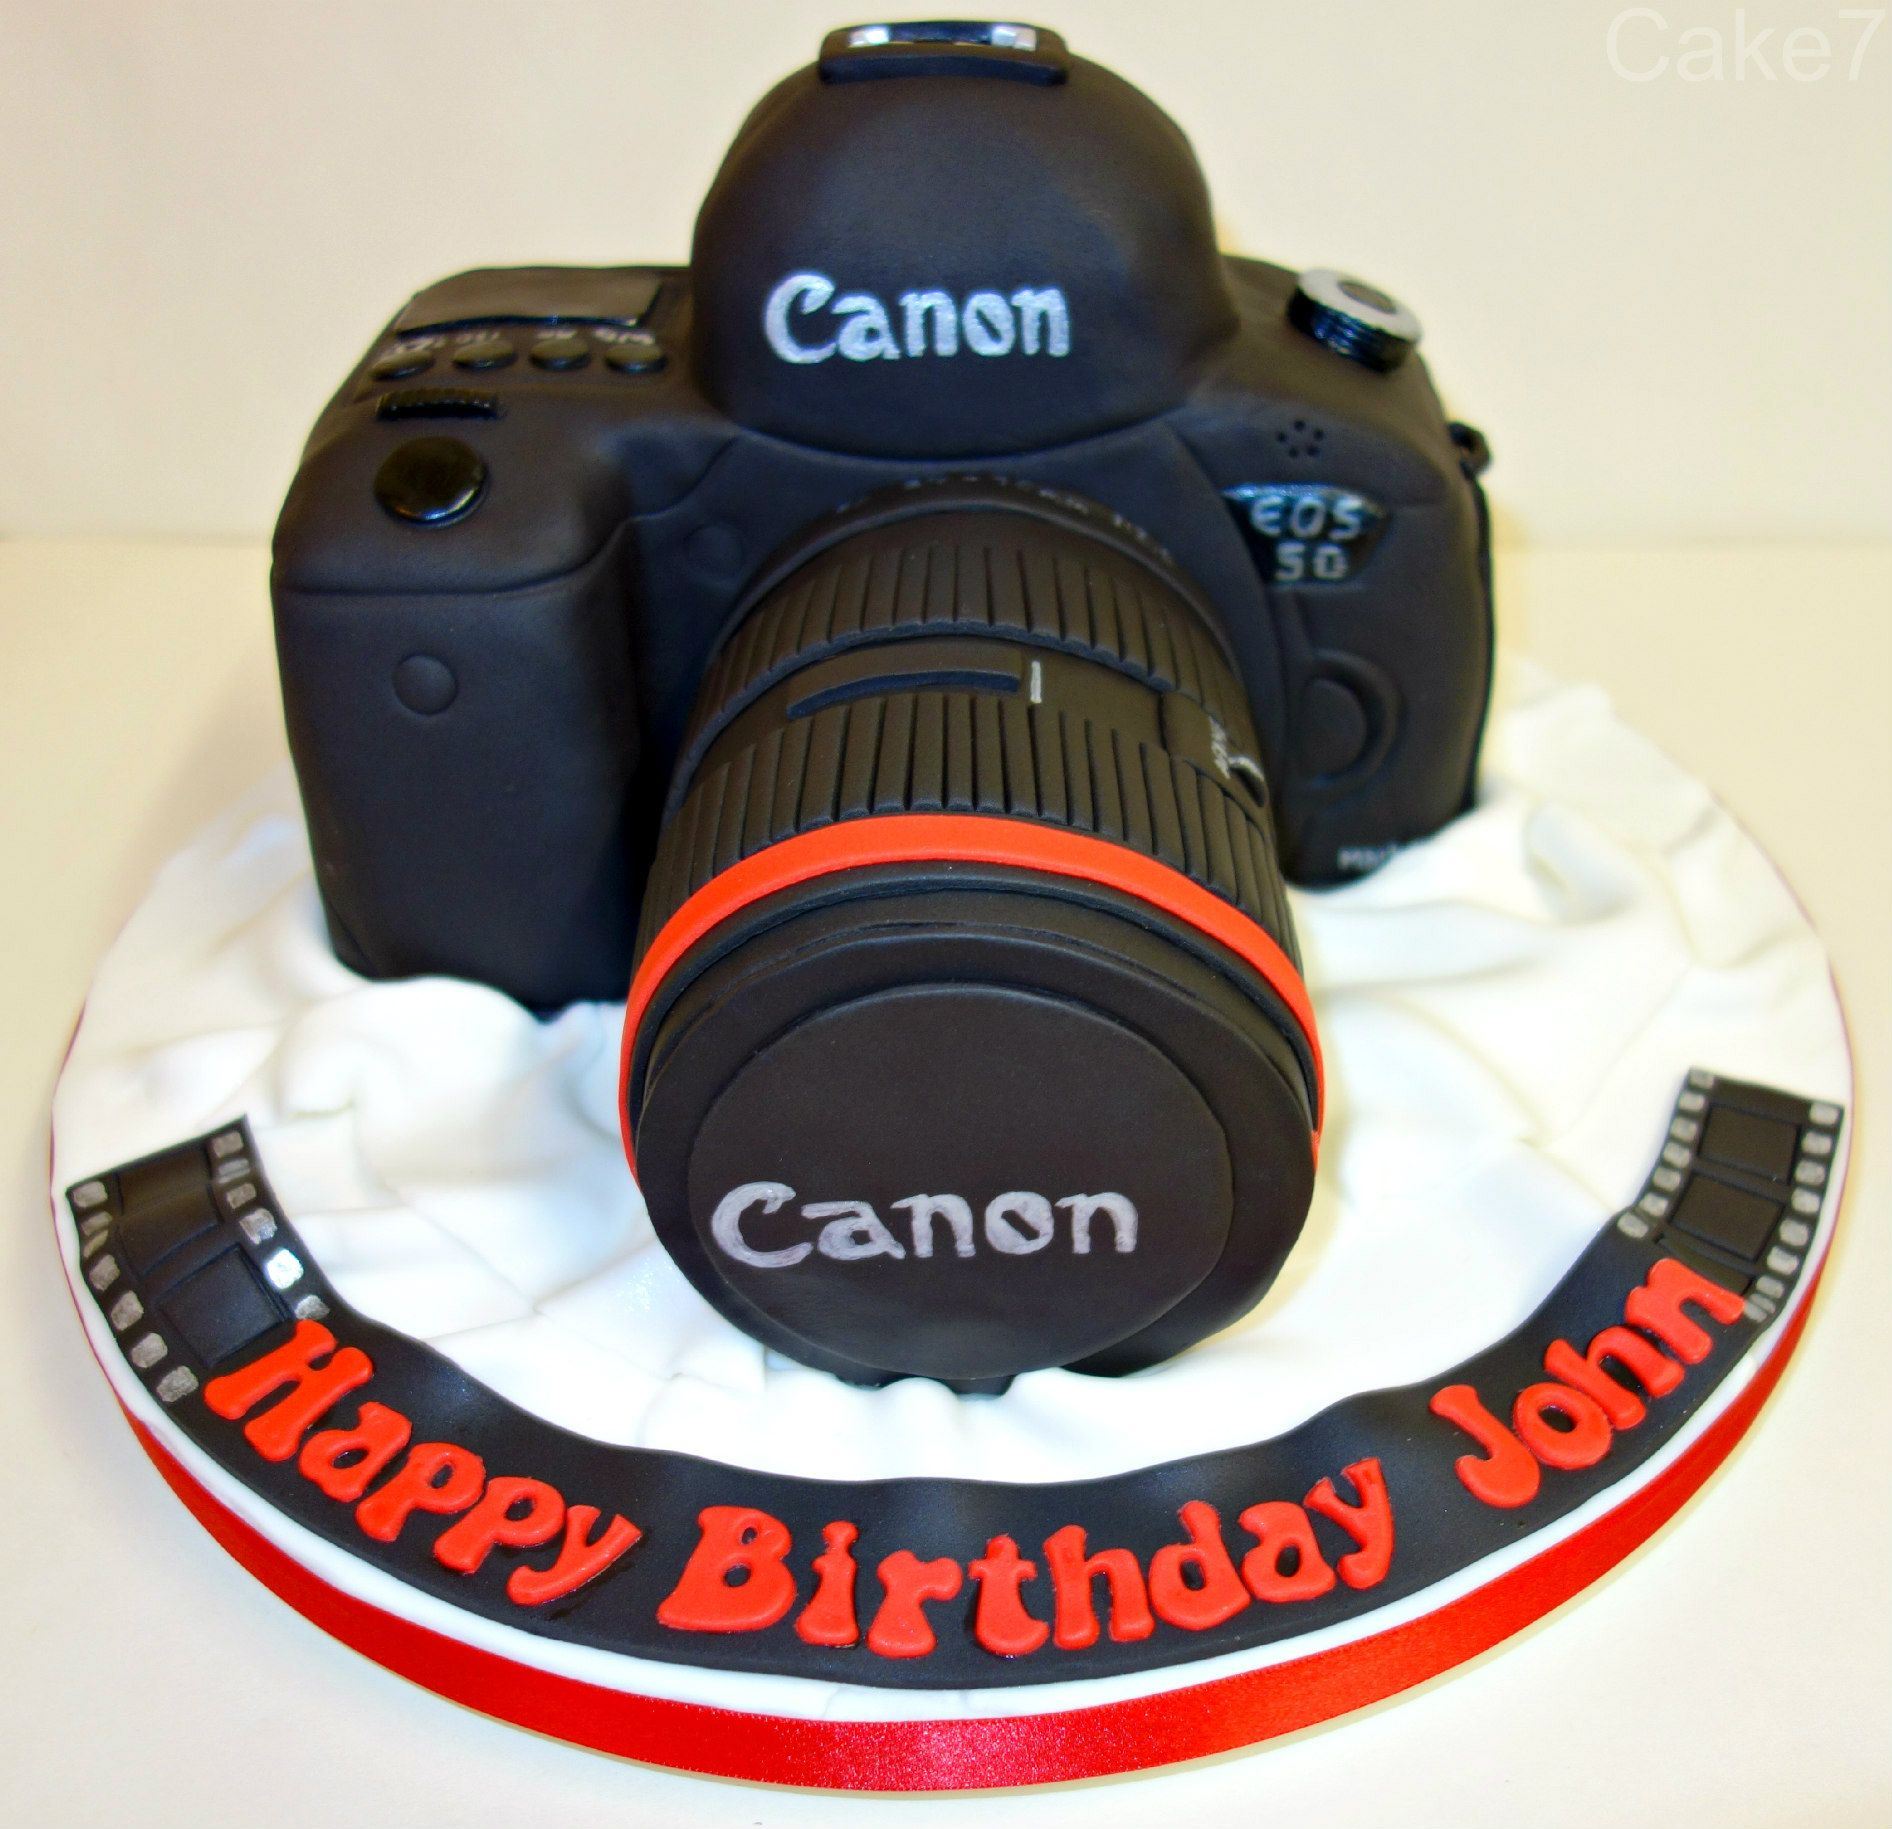 Awe Inspiring Canon 5D Camera Cake Cakeseven Wix Facebook Cake7 Funny Birthday Cards Online Barepcheapnameinfo